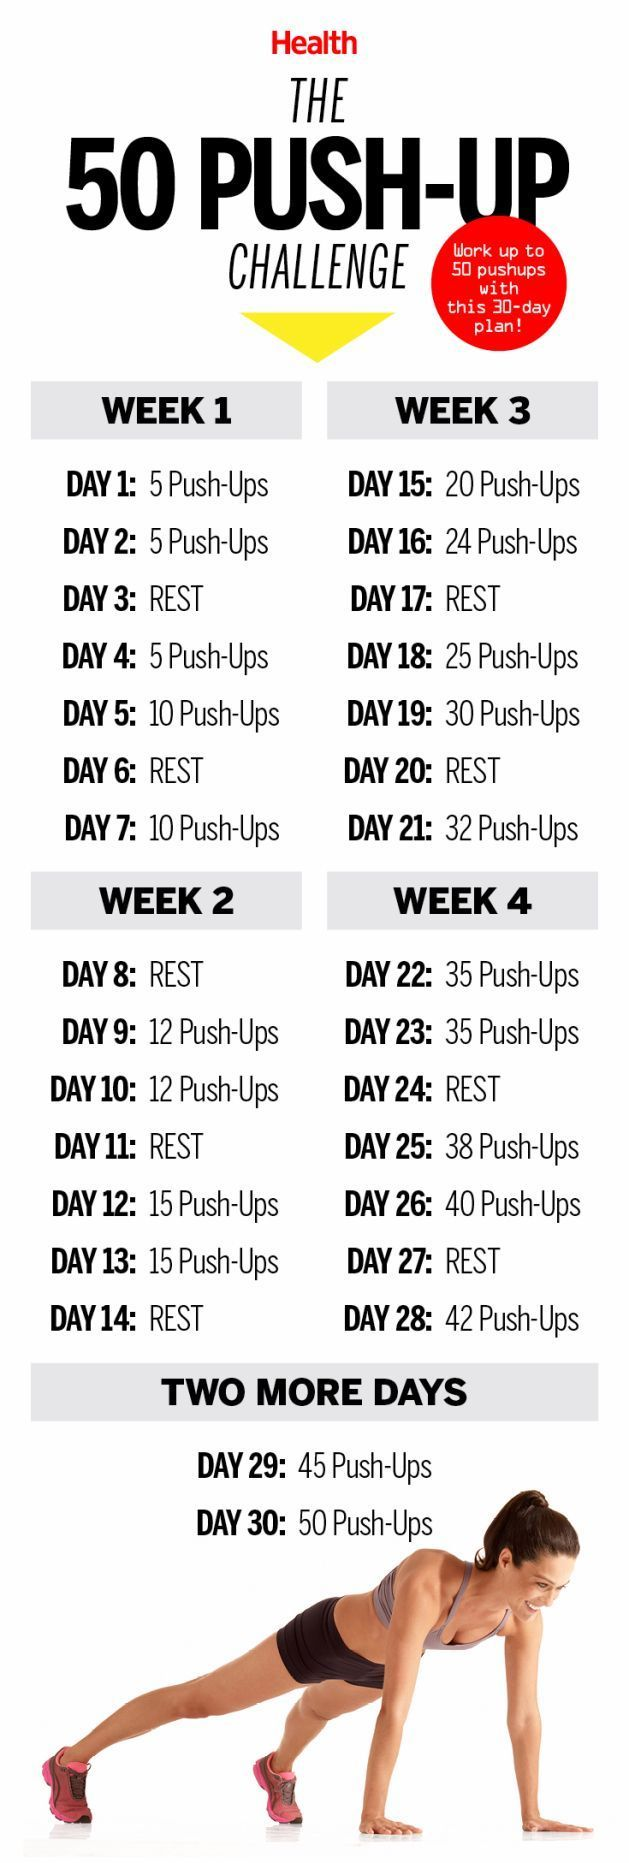 This 50 Pushup Challenge Will Transform Your Body In 30 Days